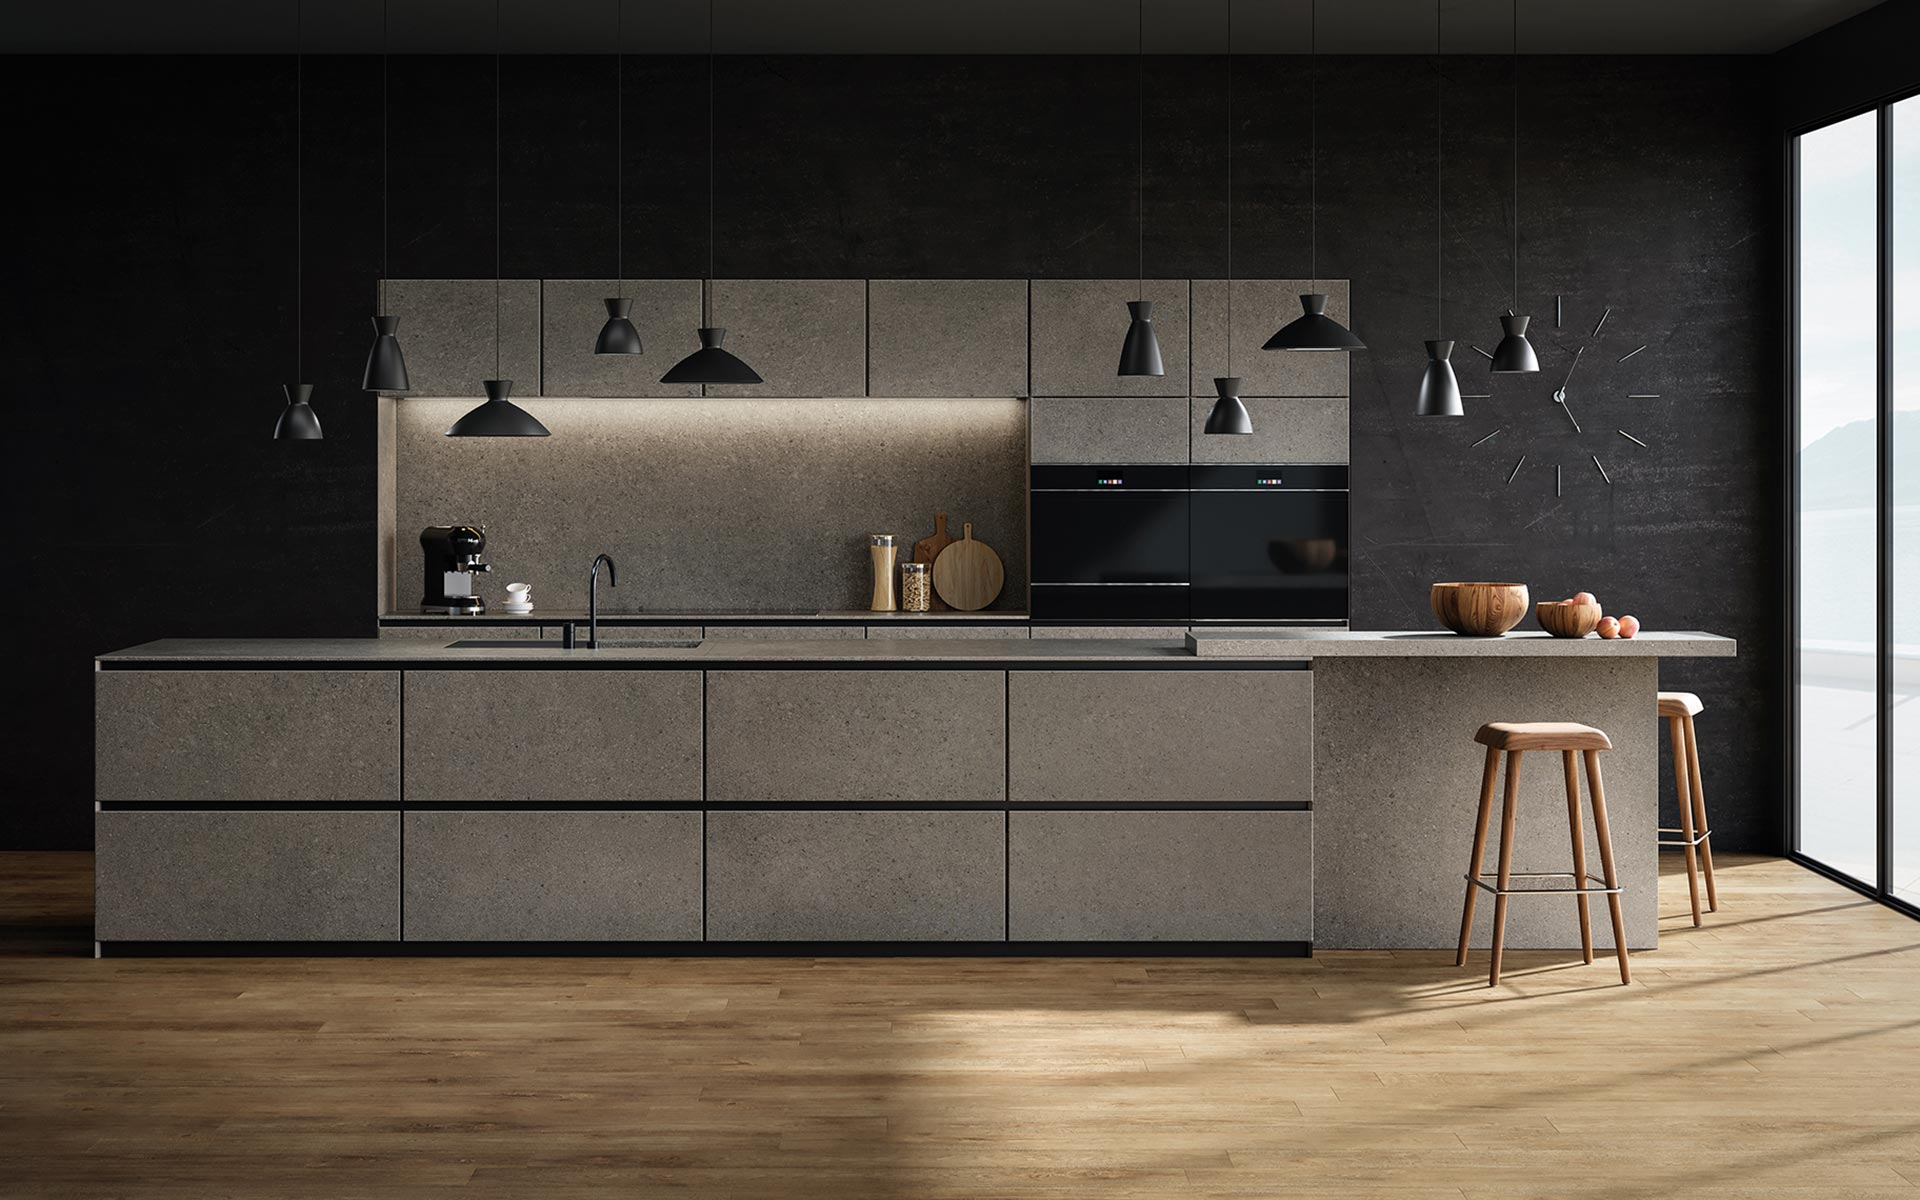 kitchen-cabinets-porcelain-stoneware-tiles